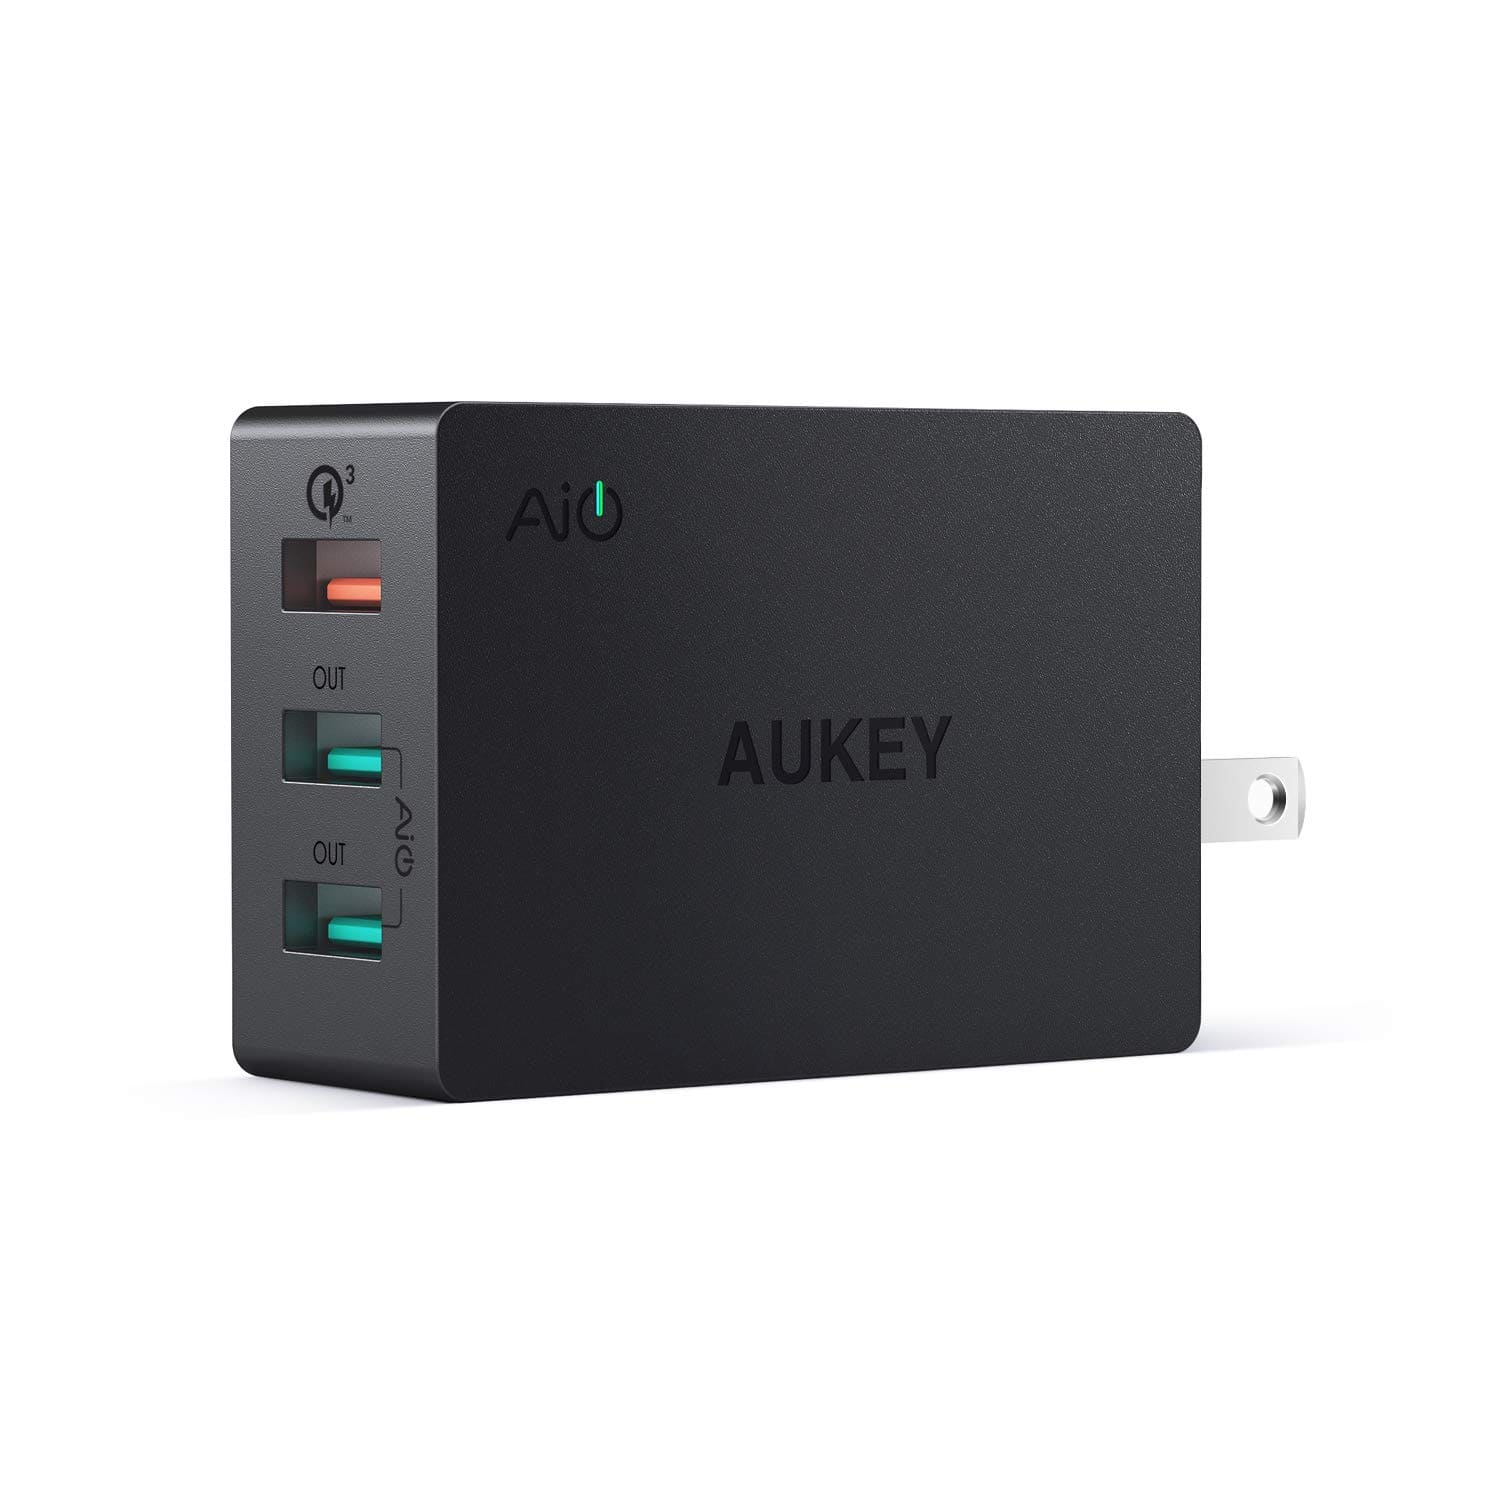 43.5w AUKEY 3 USB-A Wall Charger w/ 1 QC 3.0 $11.50